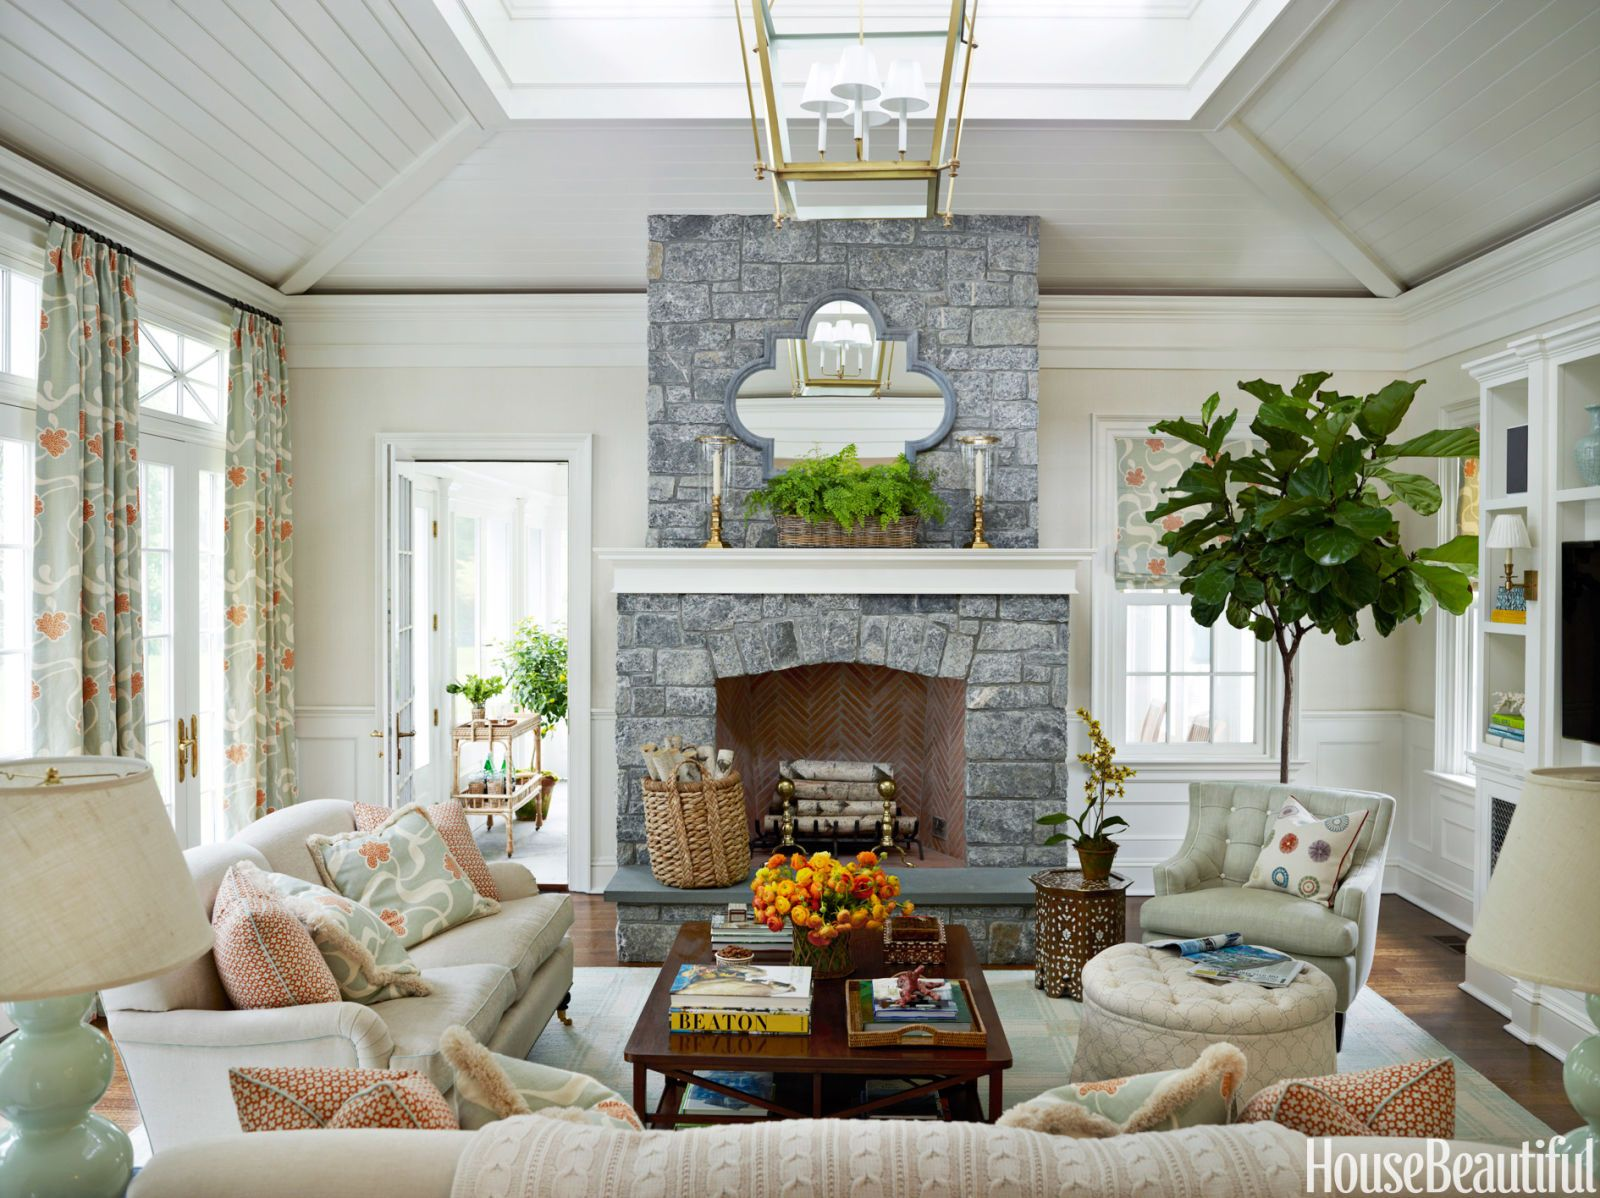 30 family room design ideas decorating tips for family rooms - Family Room Design Ideas